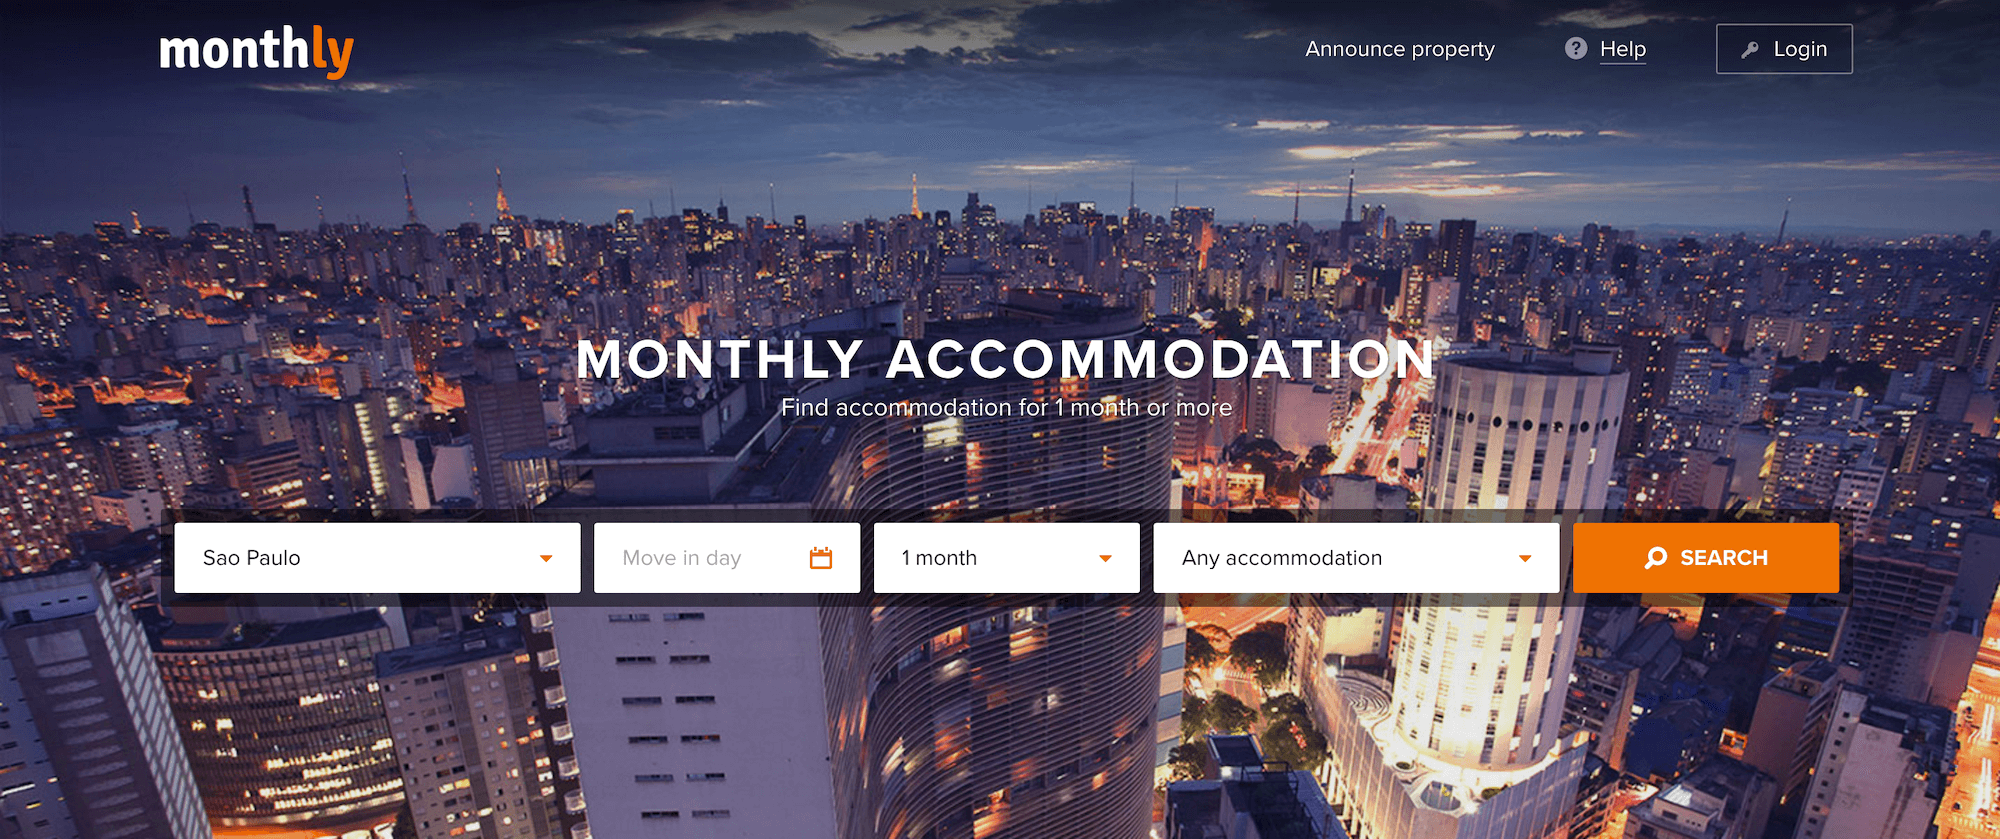 How culture influences design: Terminology on Monthly's website